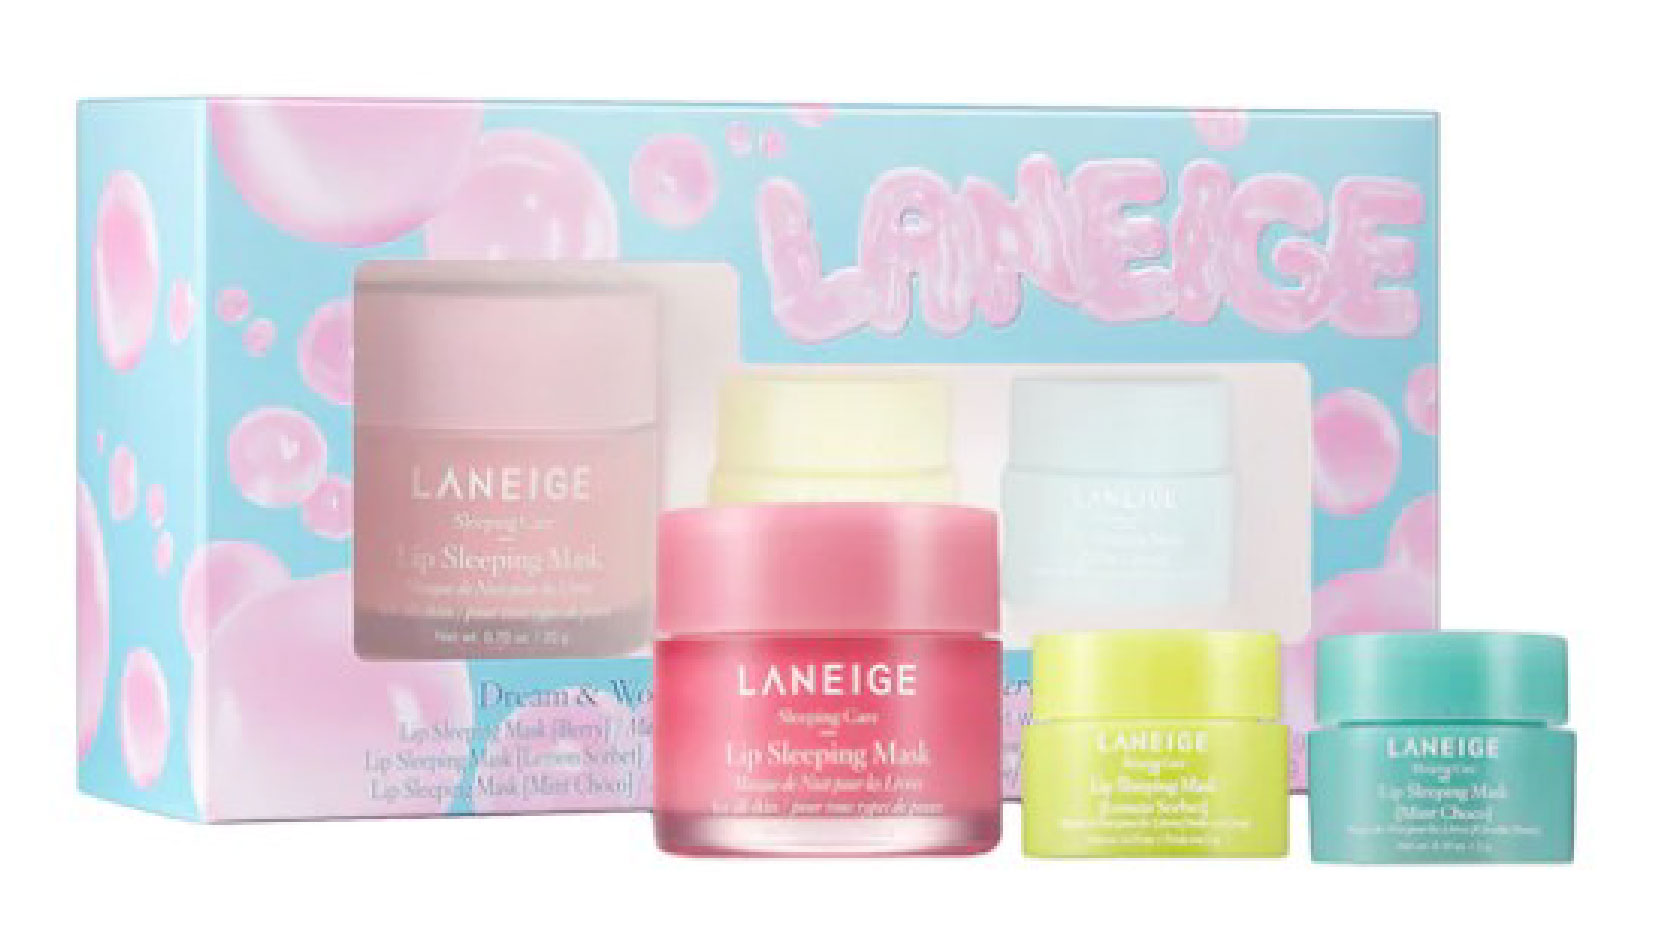 Laneige dream and wonder skincare gift set